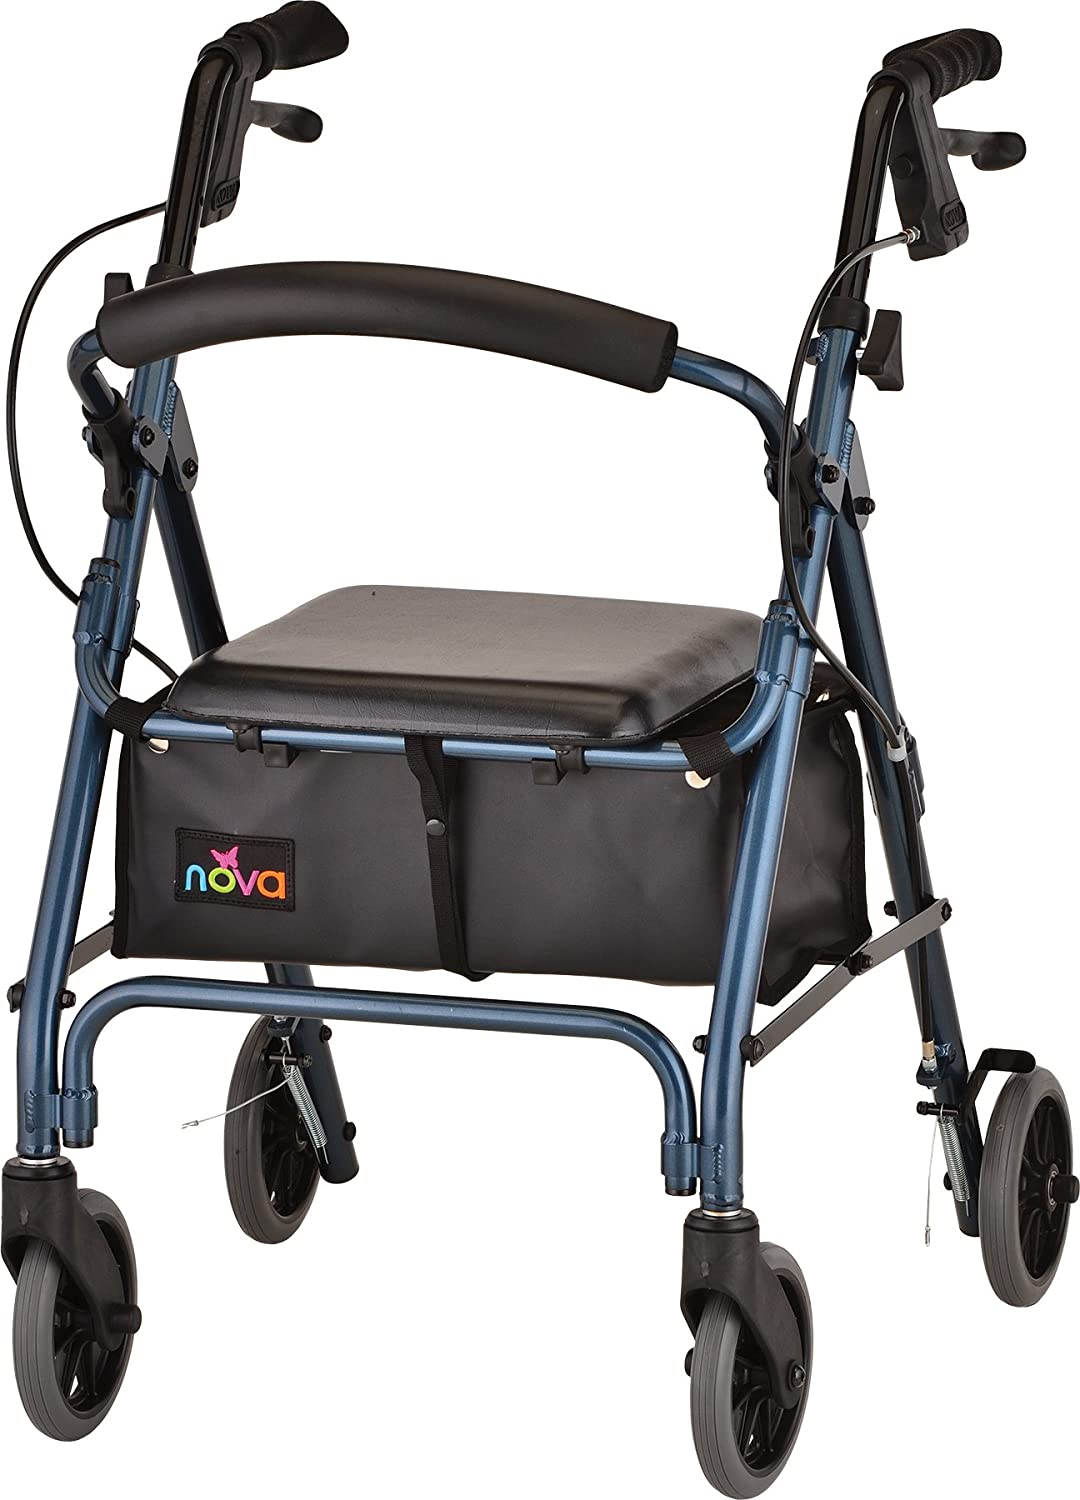 """NOVA GetGo Petite Rollator Walker (Petite & Narrow Size), Rolling Walker for Height 4'10"""" - 5""""4"""", Seat Height is 18.5"""", Ultra Lightweight - Only 13 lbs with More Narrow Frame, Color Blue"""